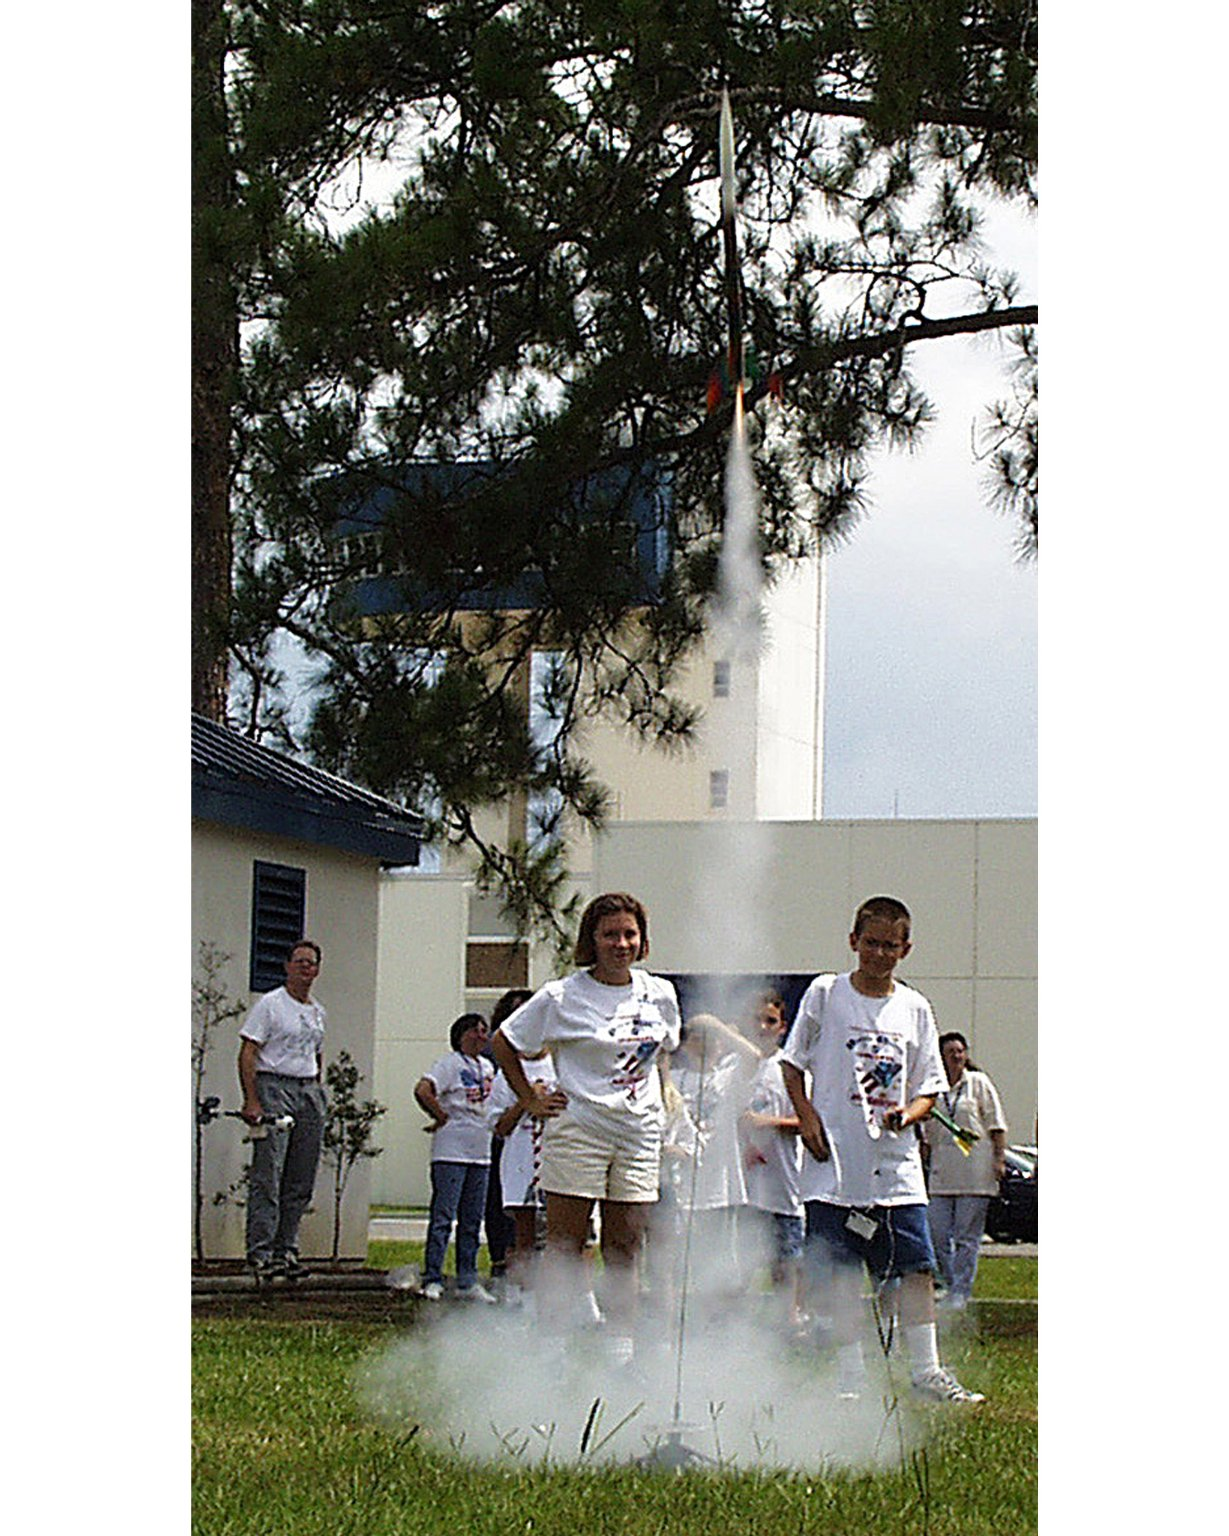 Astro Camp 2000 Rocketry Exercise